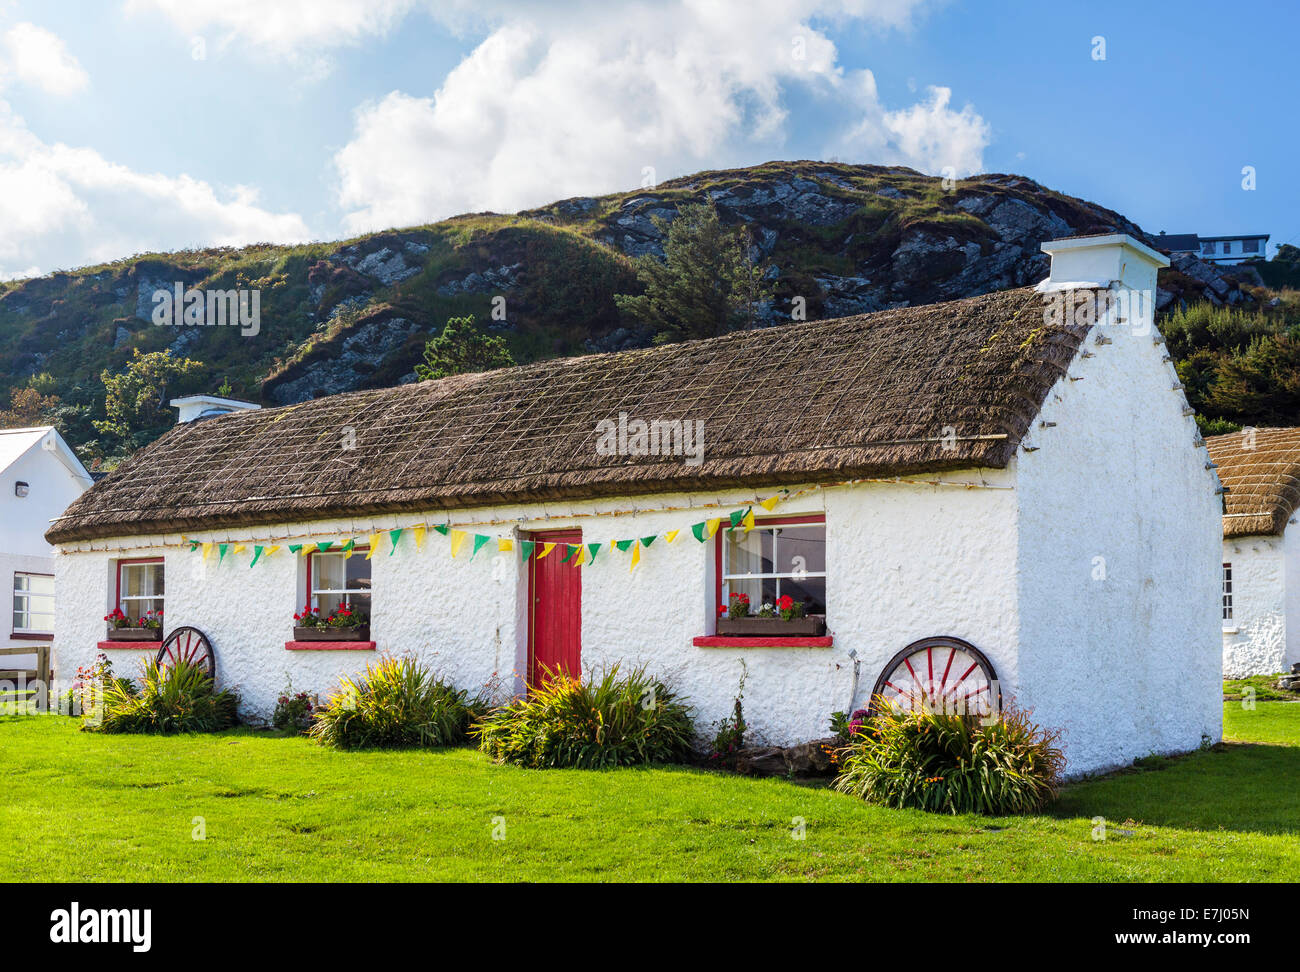 Thatched cottage at the Folk Village and Heritage Centre, Doonalt, Glencolmcille, County Donegal, Republic of Ireland - Stock Image